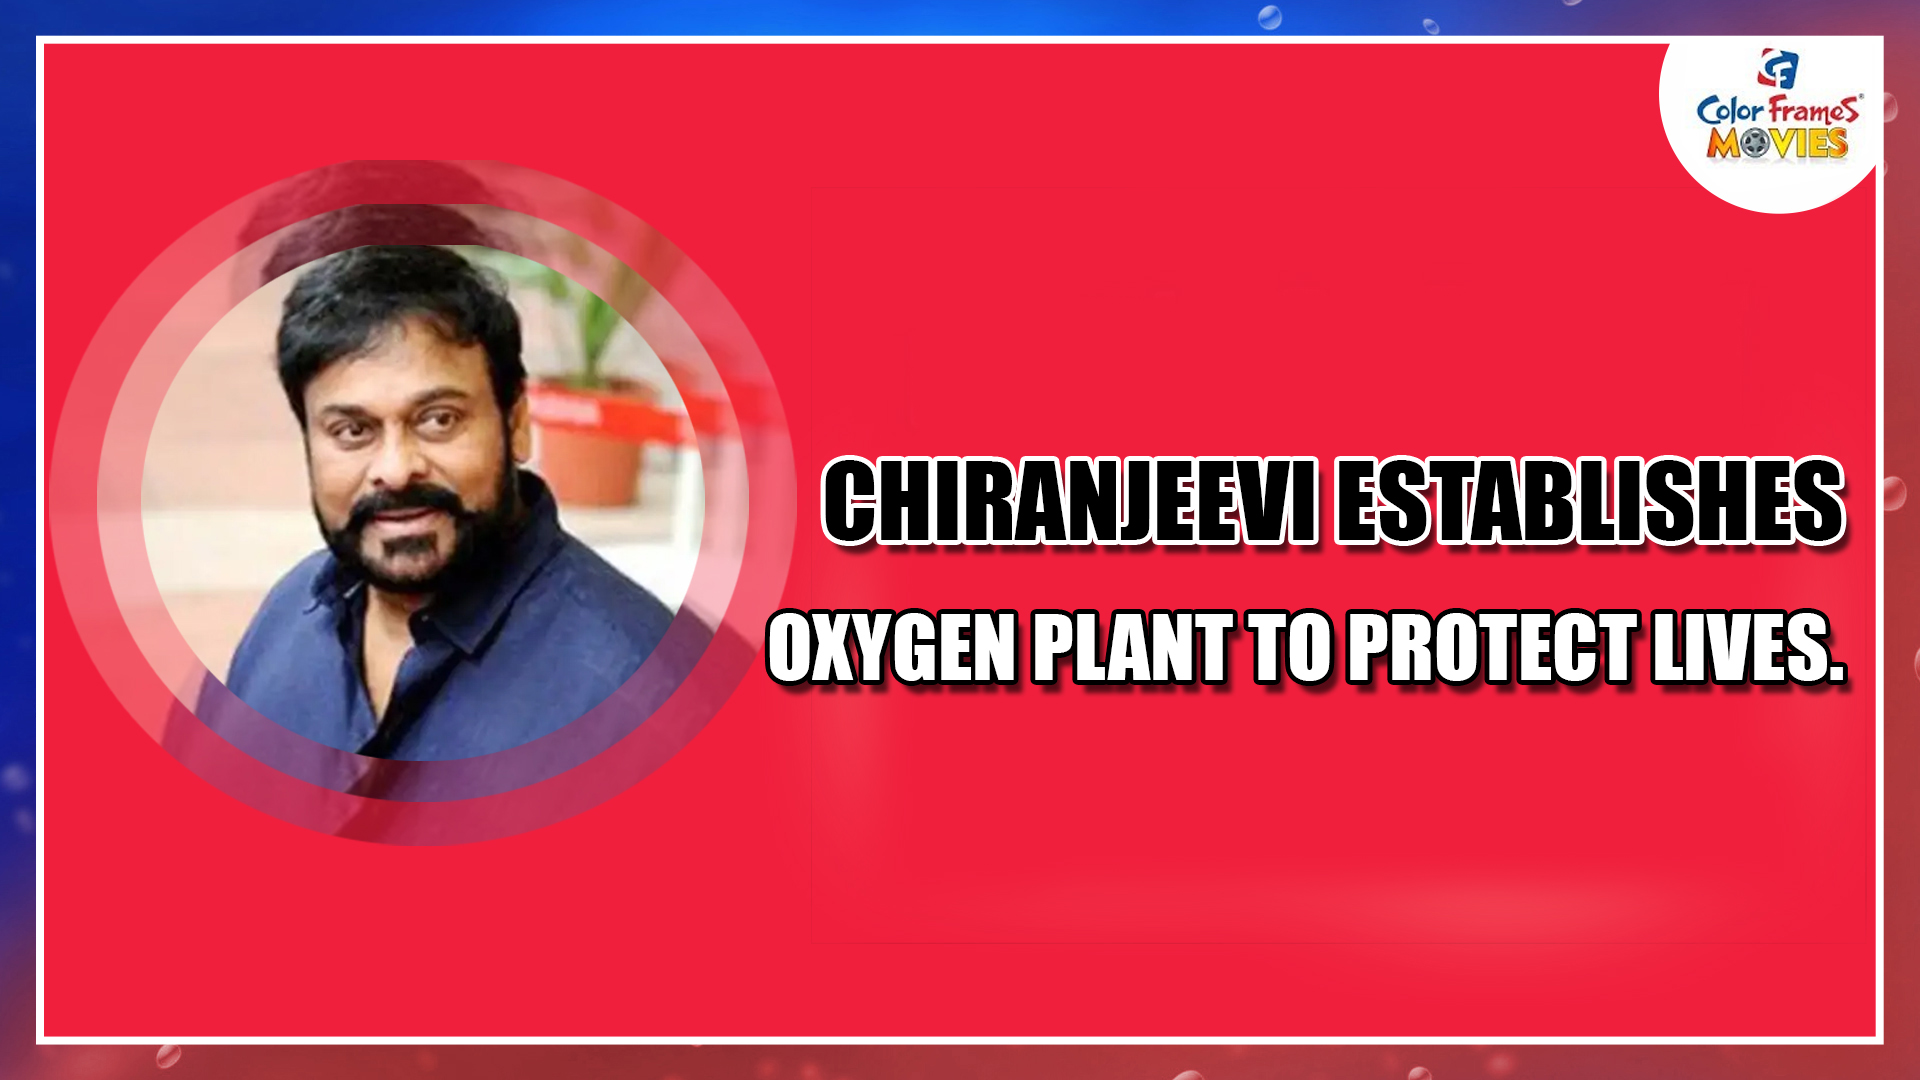 Chiranjeevi Establishes Oxygen Plant to protect lives.